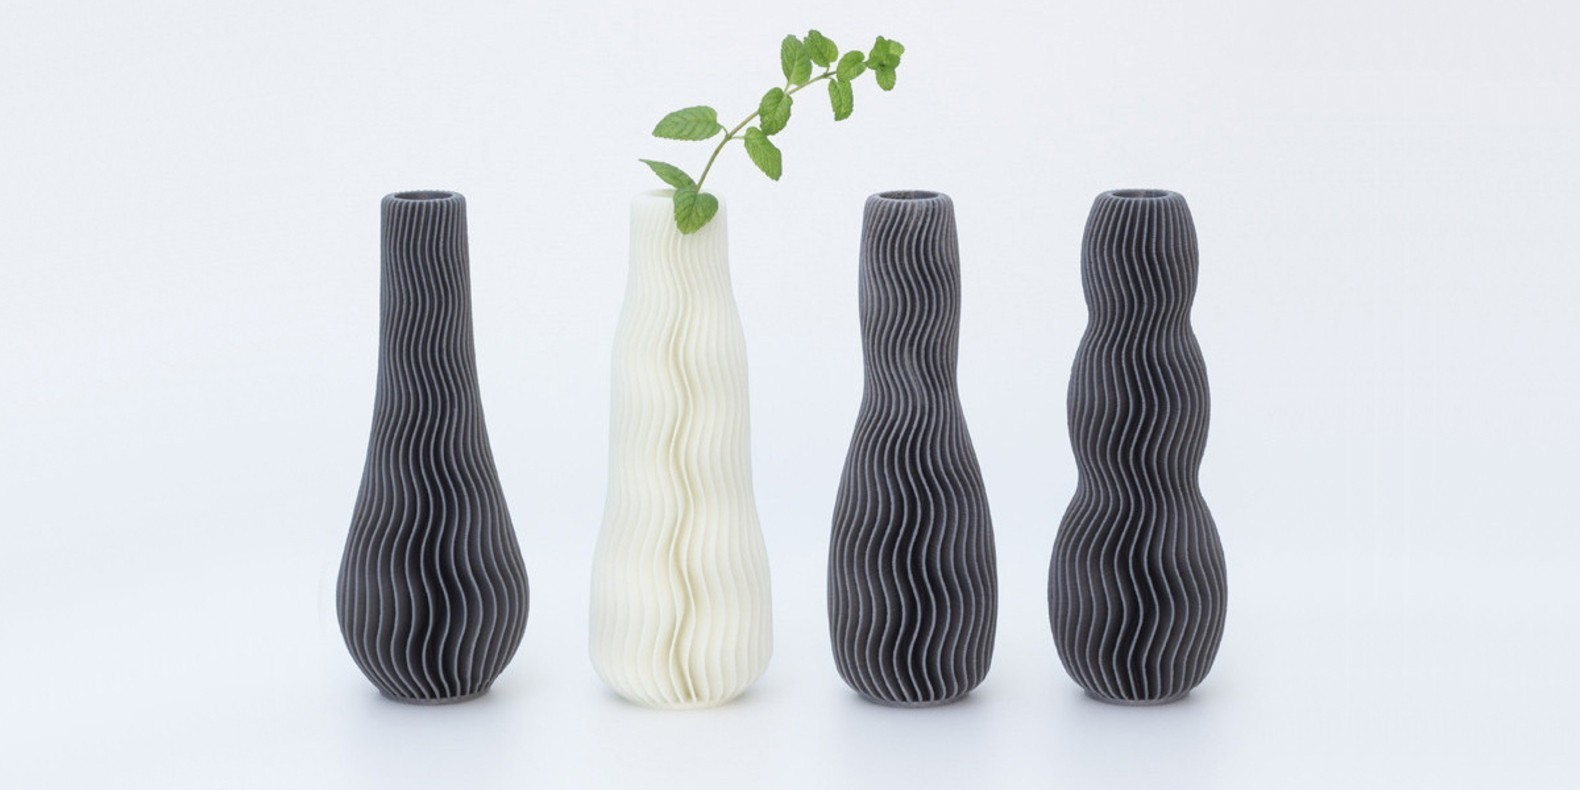 Discover in this new collection of 3D printer models of vases.